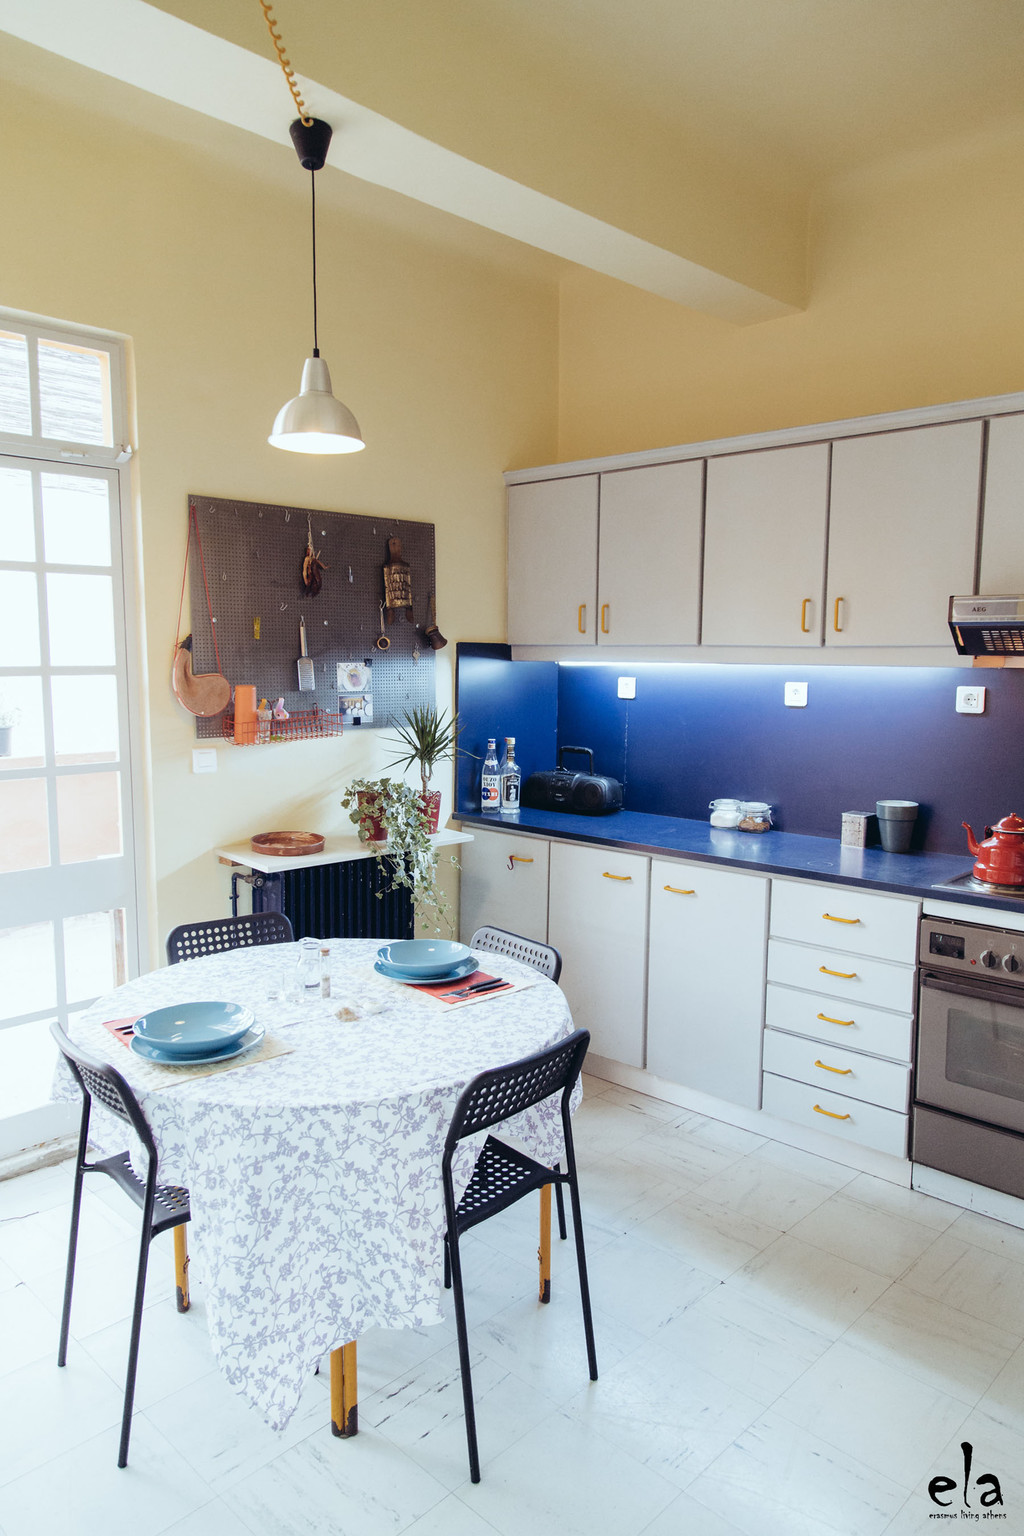 sunny-cosy-room-central-athens-175m2-appartment-1-min-aueb-balcony-terrace-furnished-b892371ee522373f55dd94cadde95d2a.jpg